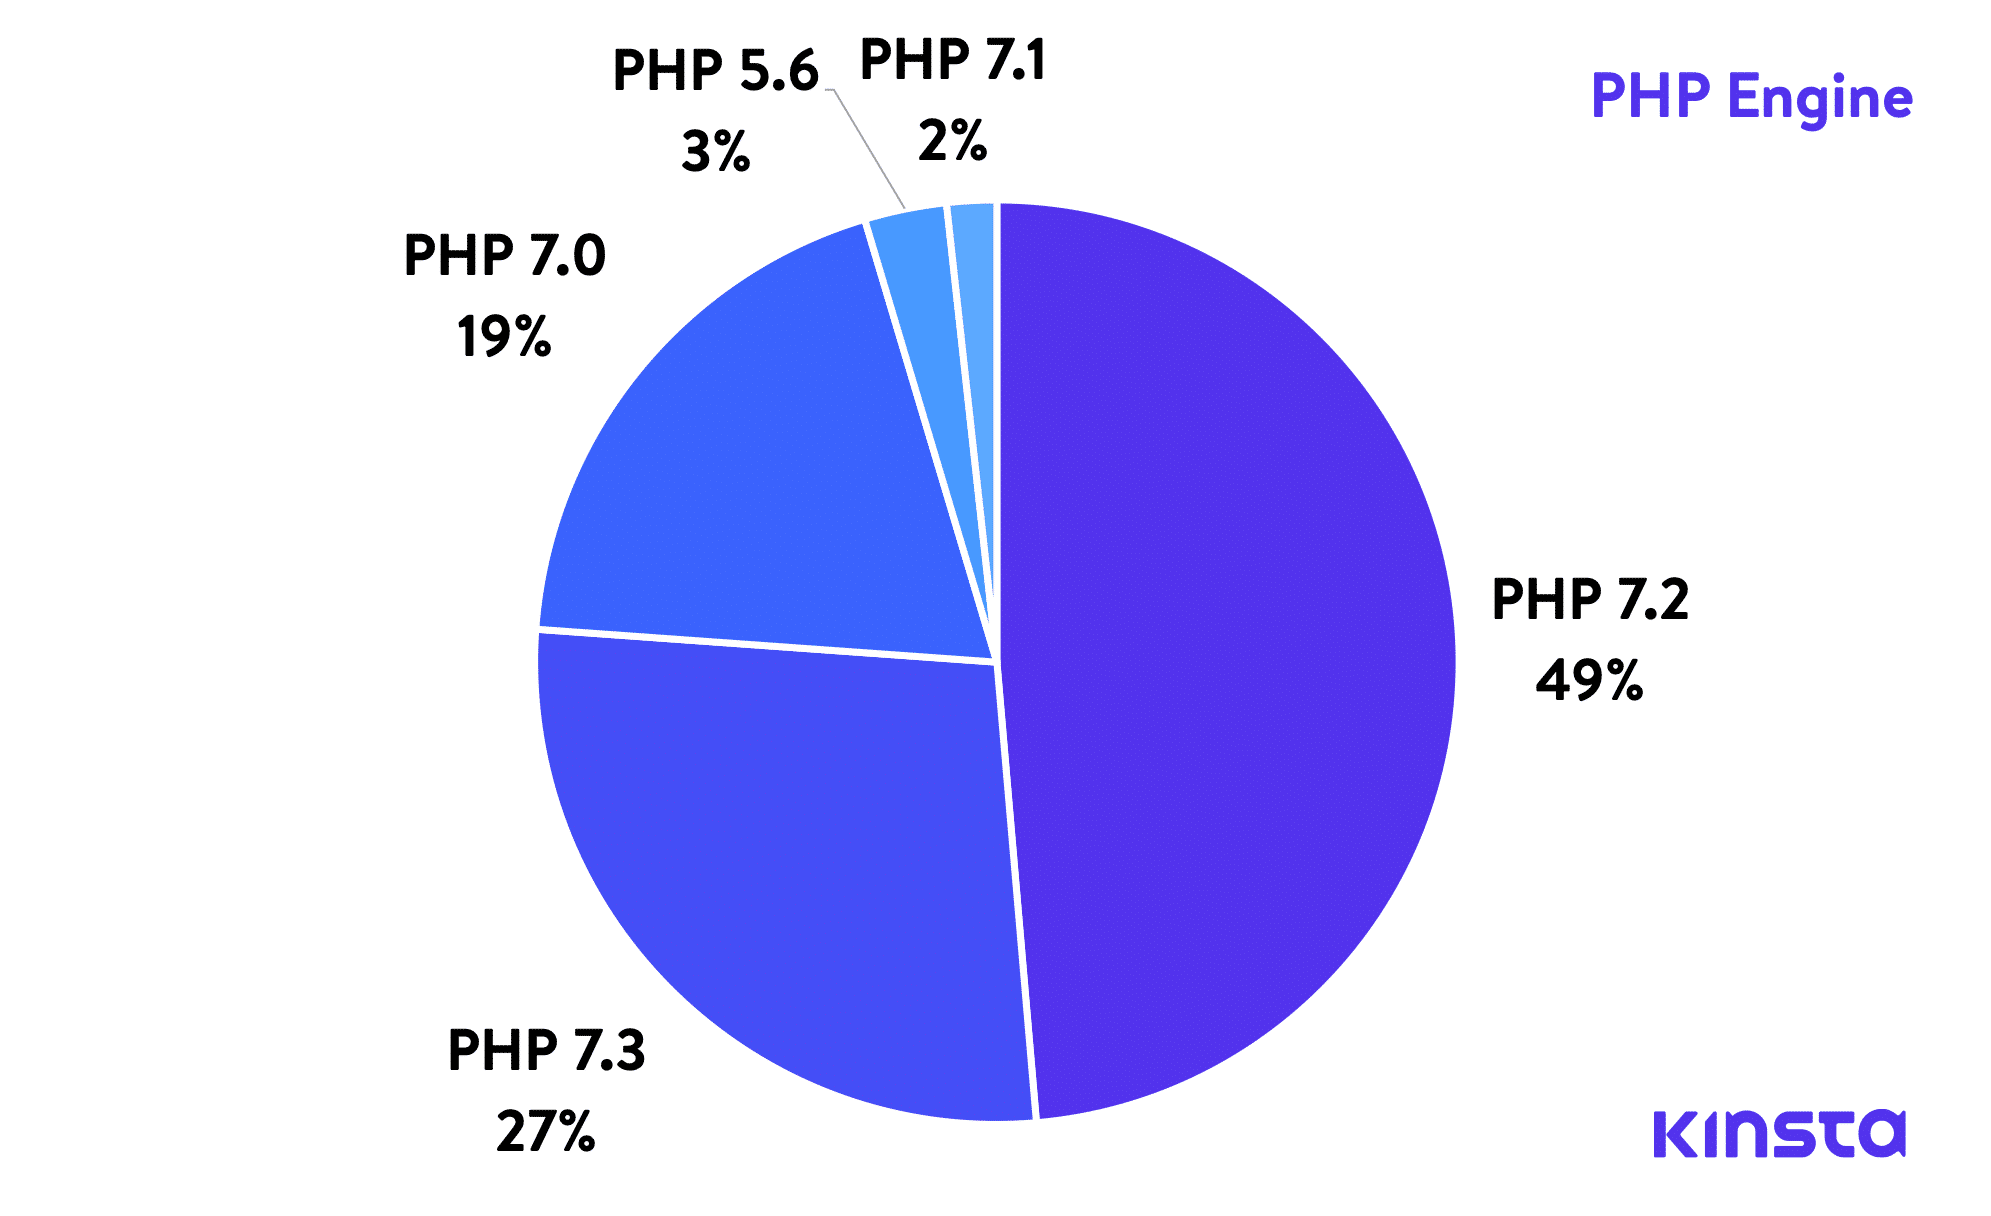 PHP engine